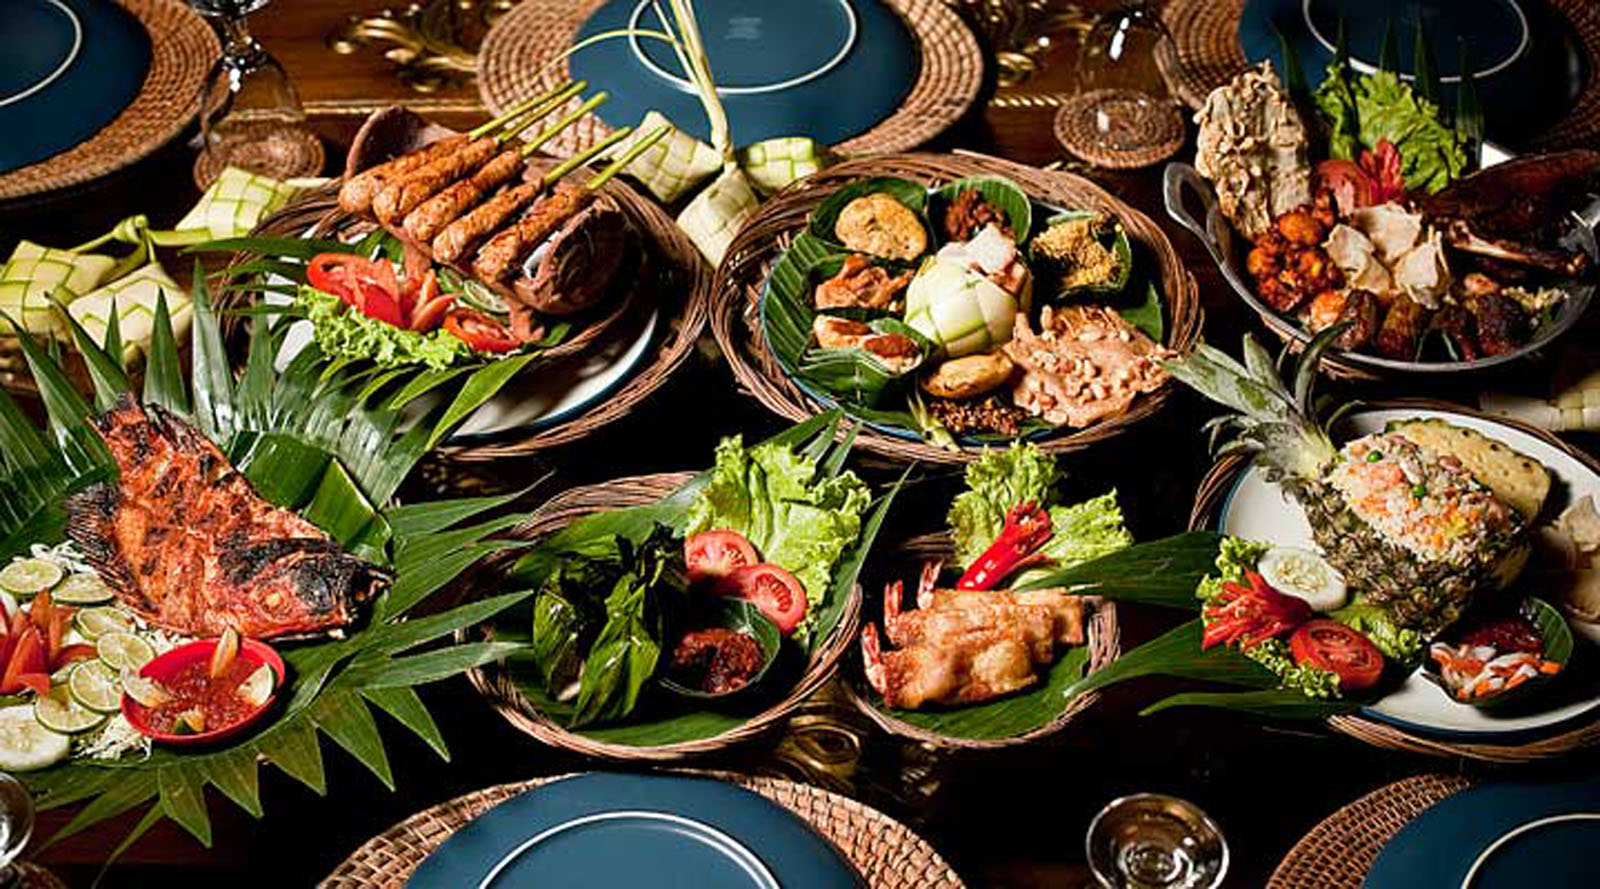 Popular Chicken From Indonesia Know The Indonesian Food Menu From Chicken That Is So Popular Not Only In Indonesia But Also Overseas Hobi Ternak